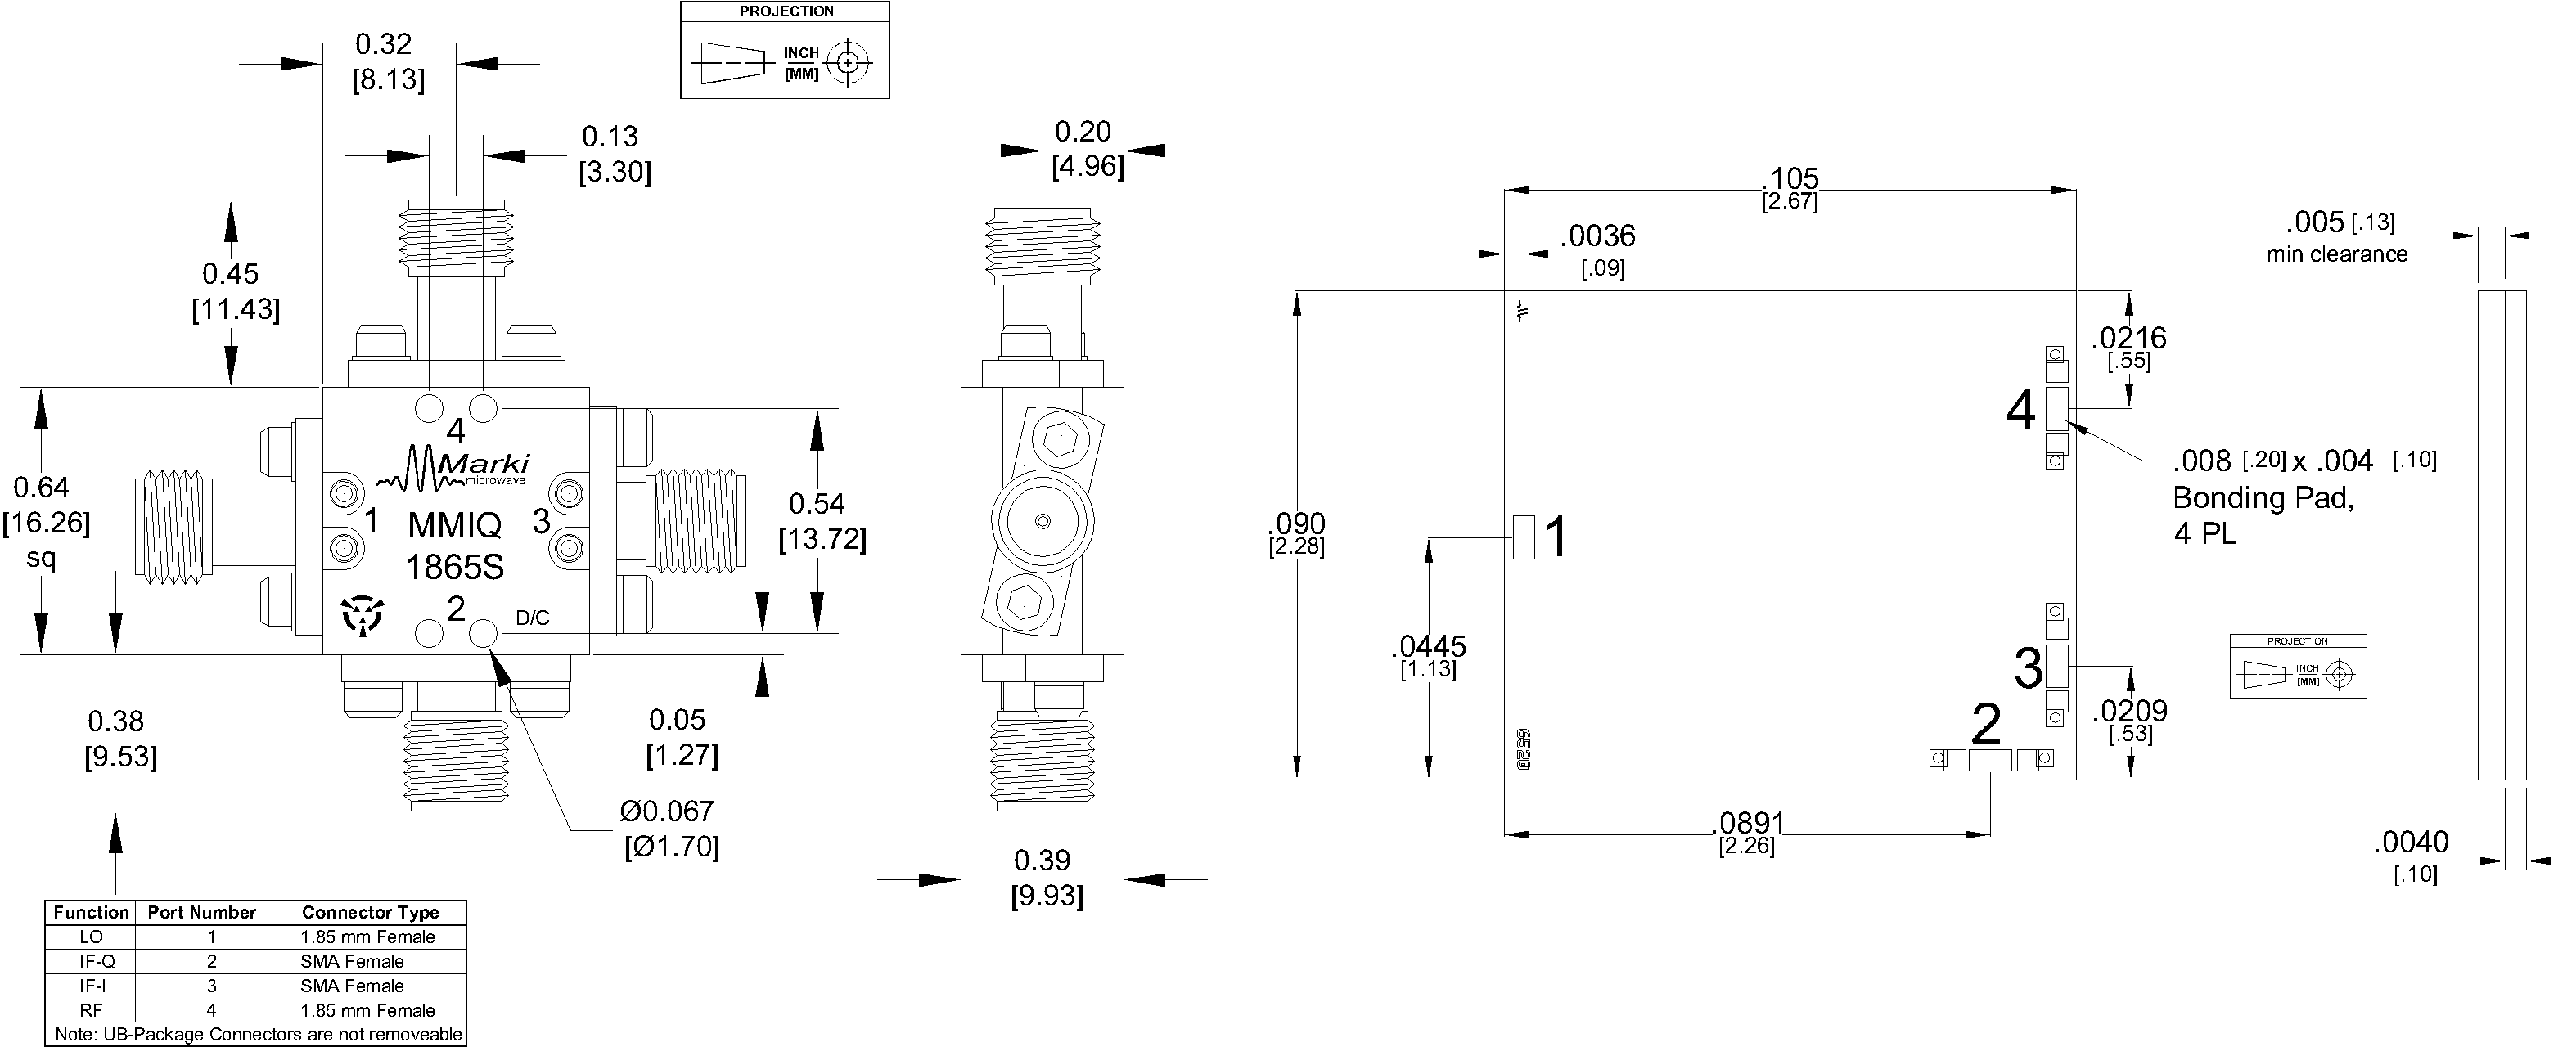 MMIQ-1865S Mixer Package Diagram